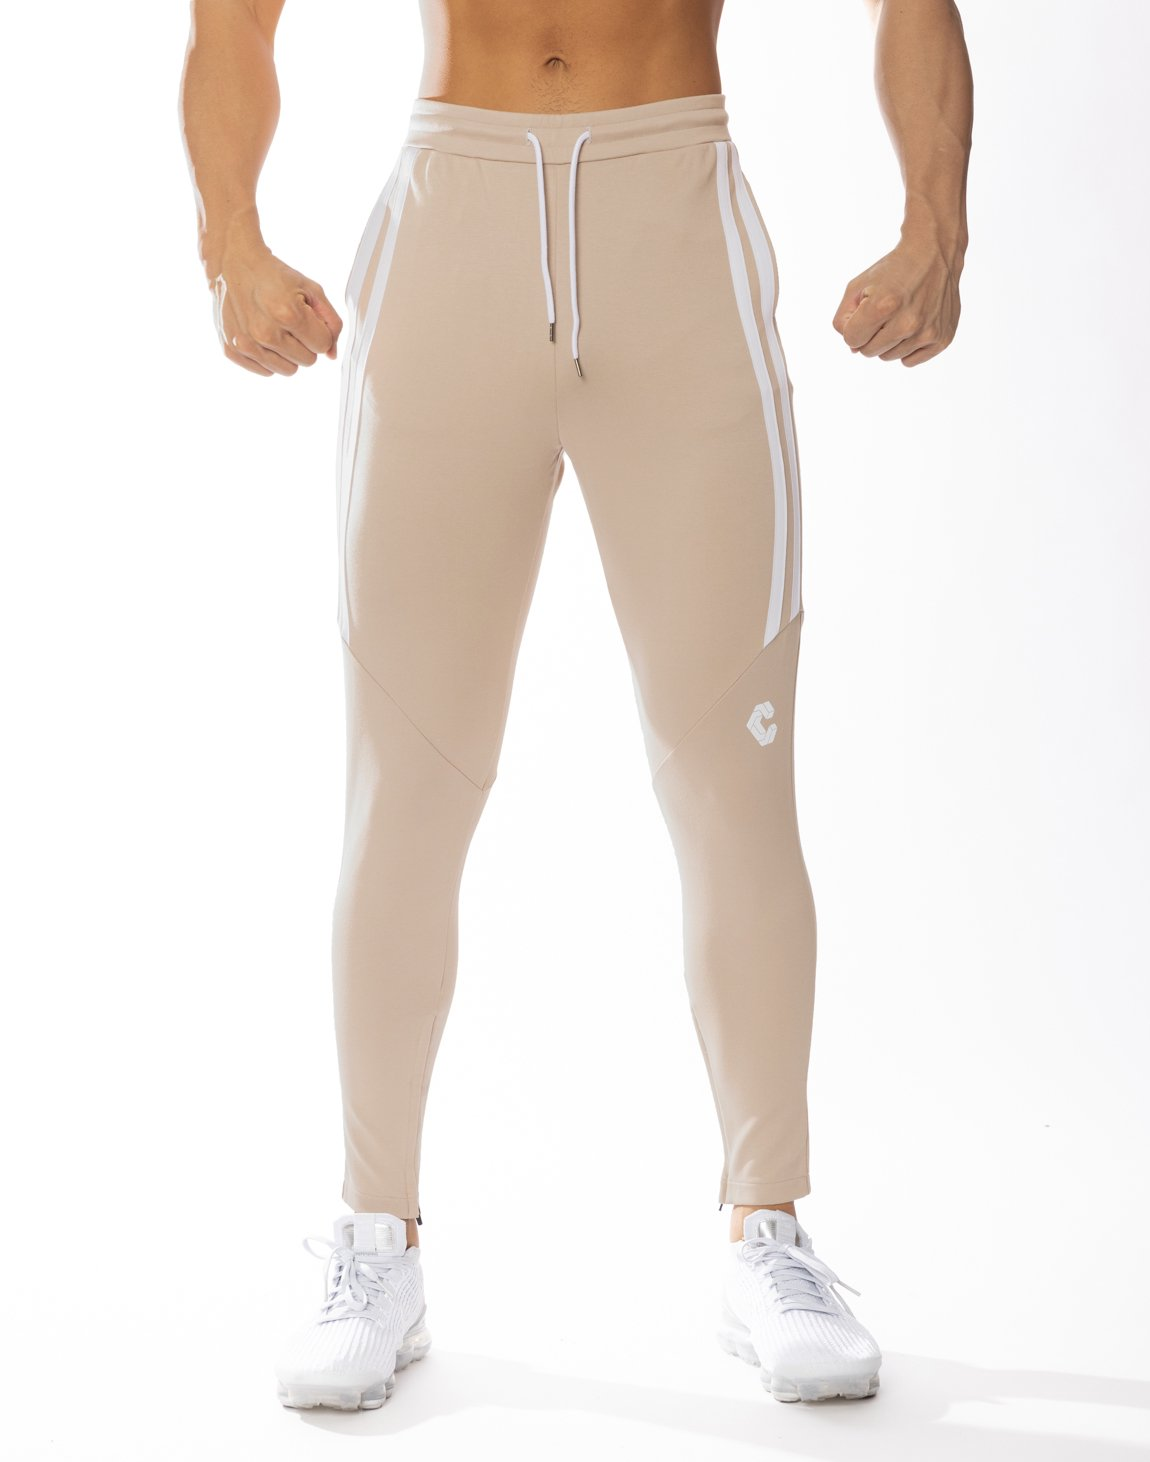 <img class='new_mark_img1' src='https://img.shop-pro.jp/img/new/icons55.gif' style='border:none;display:inline;margin:0px;padding:0px;width:auto;' />CRONOS HALF 2STRIPE CALF LOG PANTS 【BEIGE】